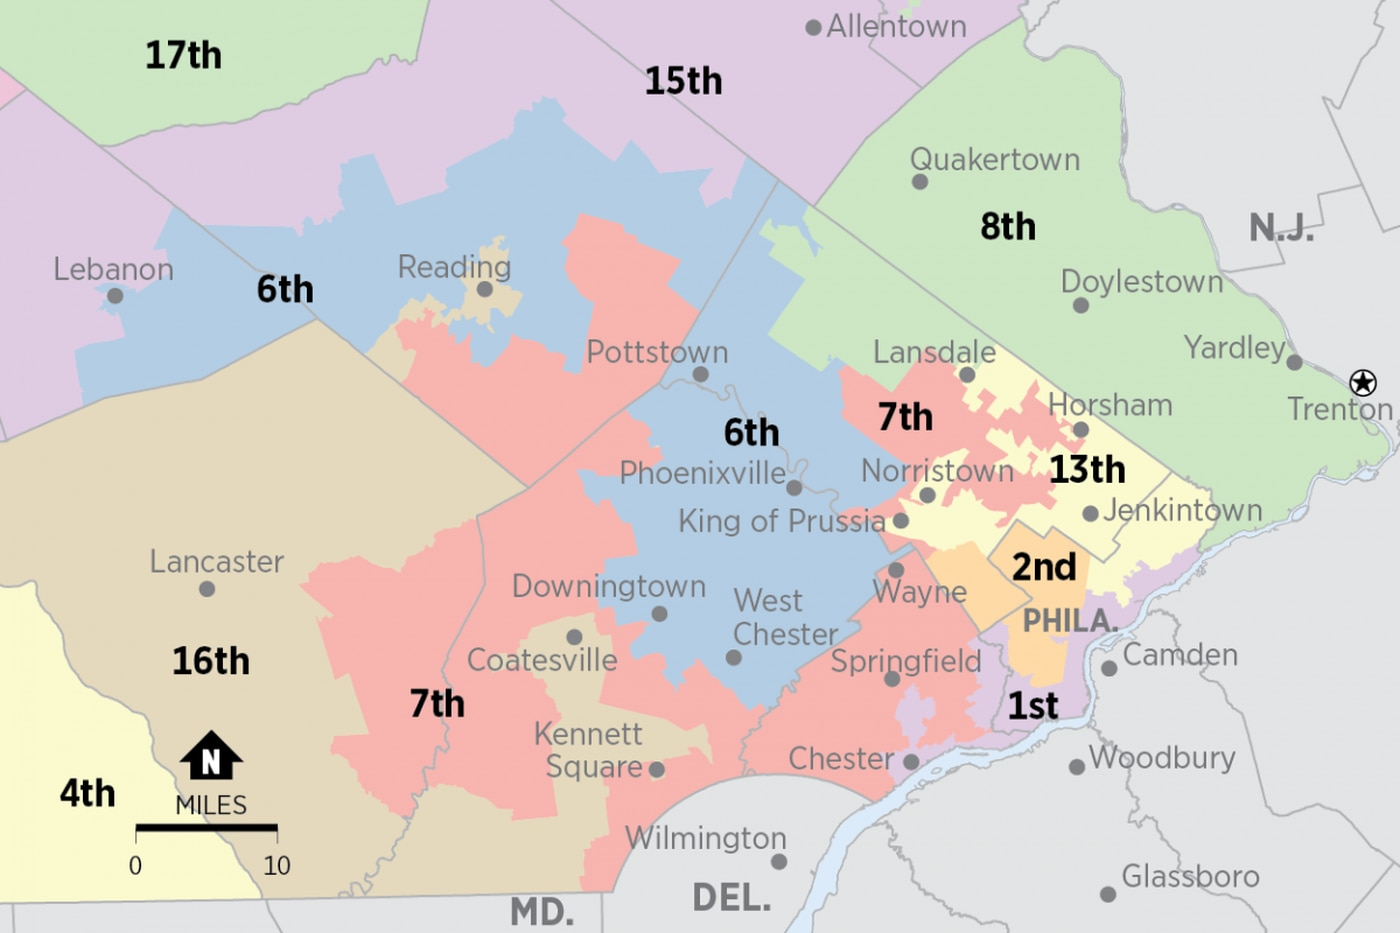 Pa. Republicans ask state Supreme Court to stay its own gerrymandering order